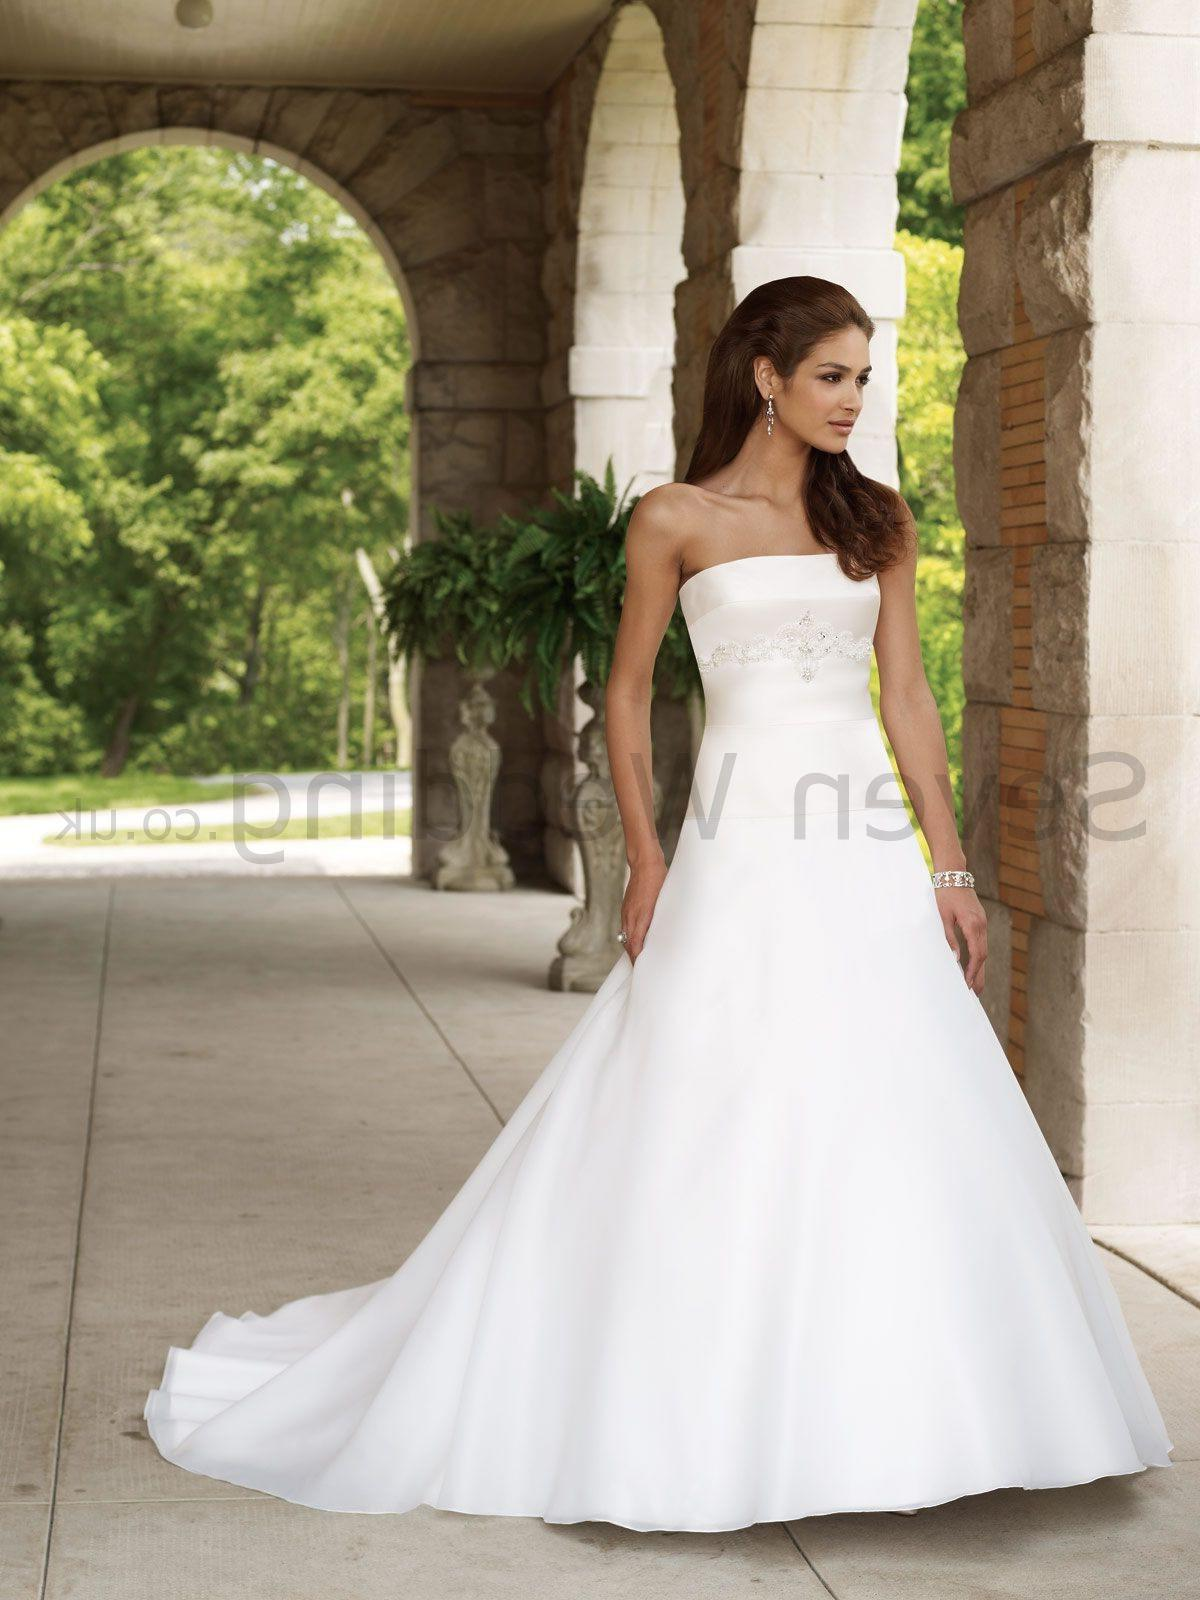 abstract strapless wedding